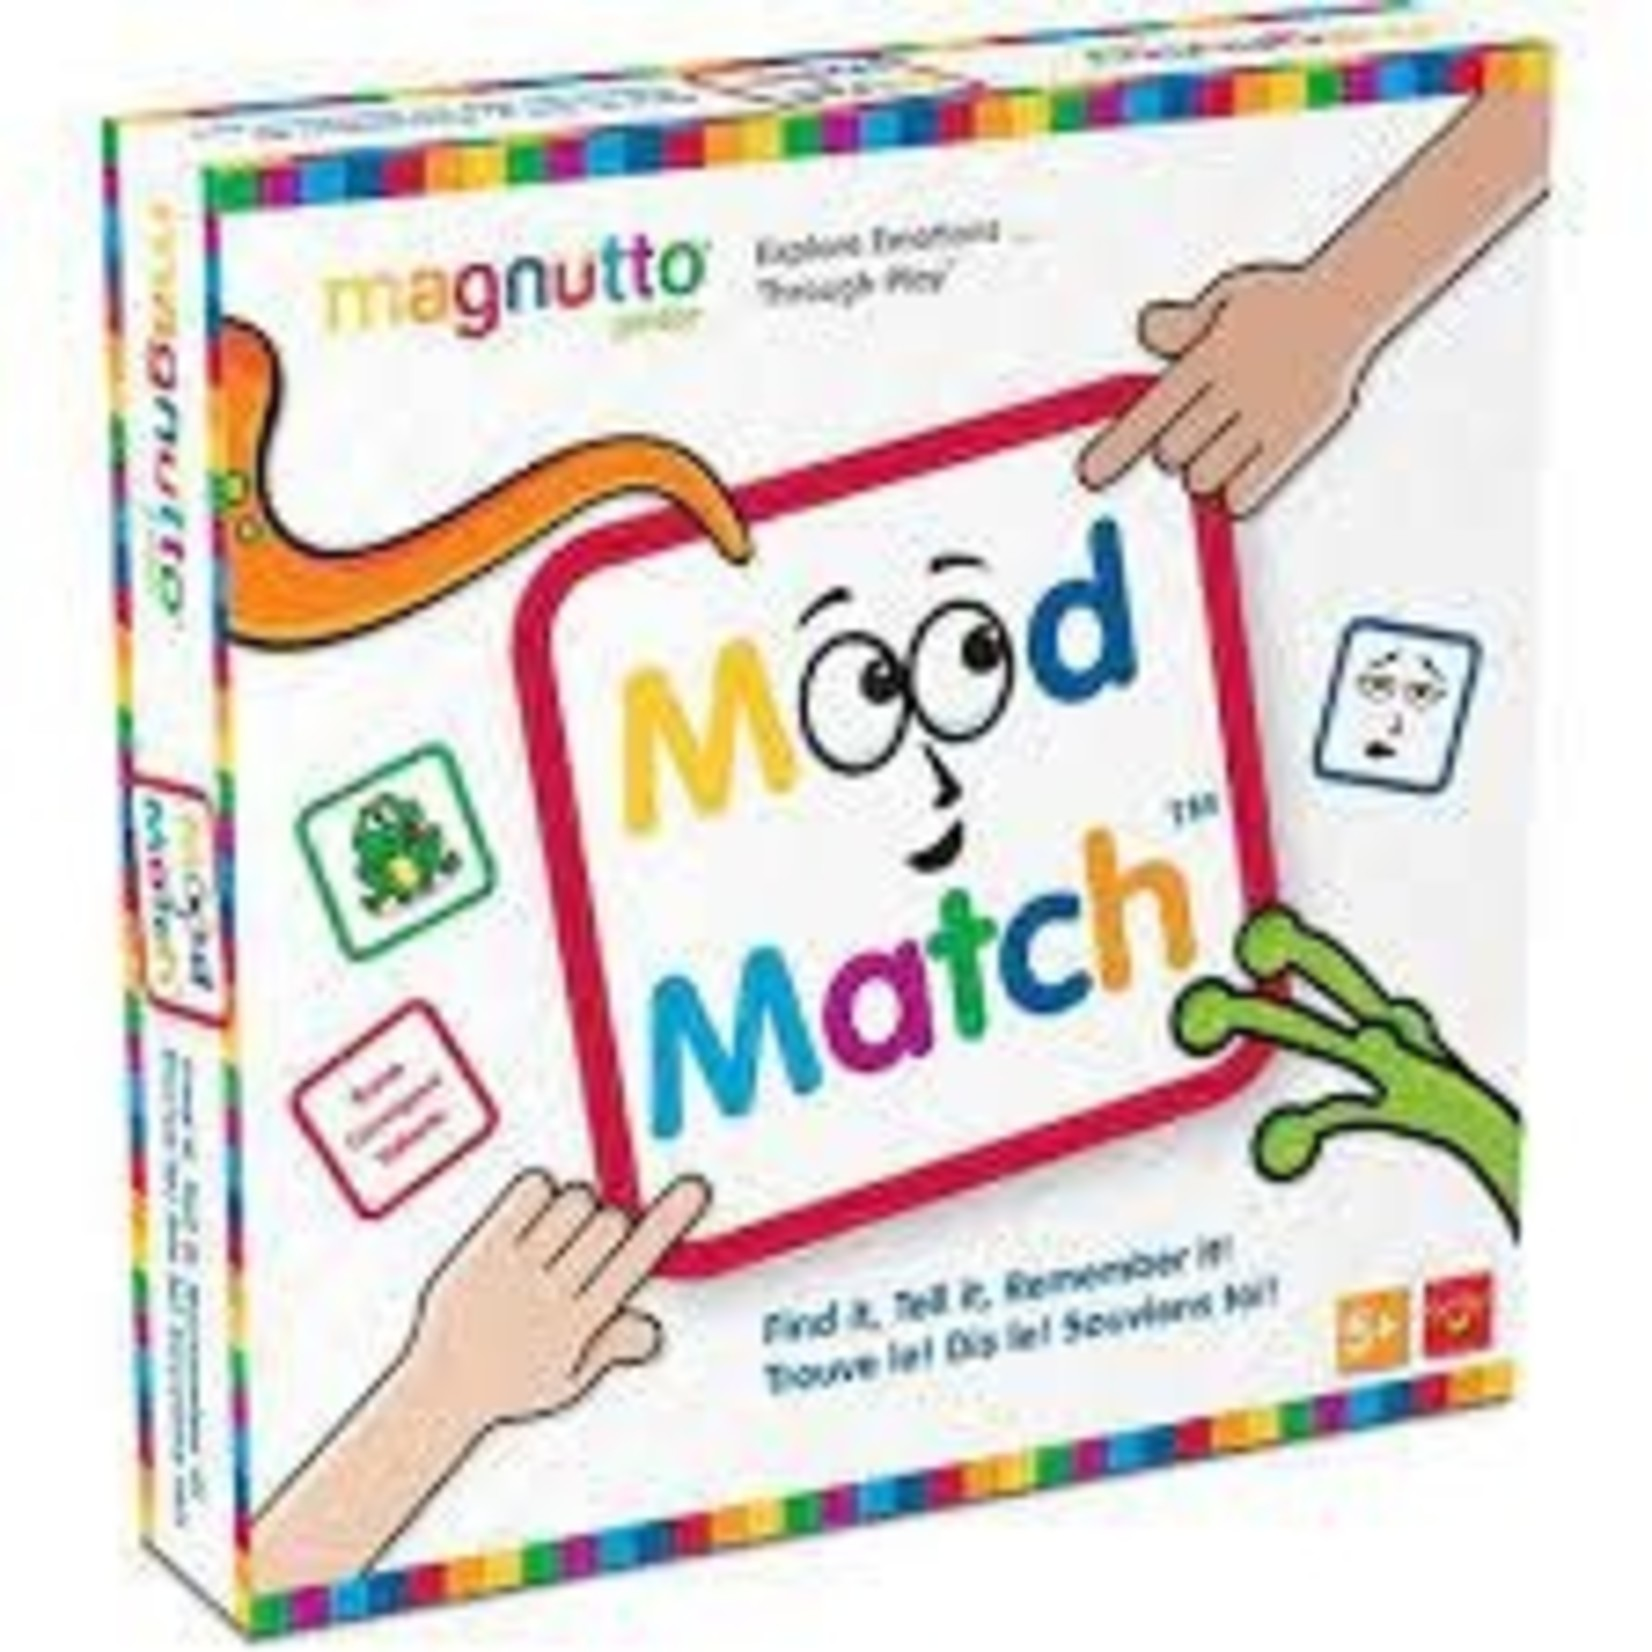 Magnutto Mood Match Game